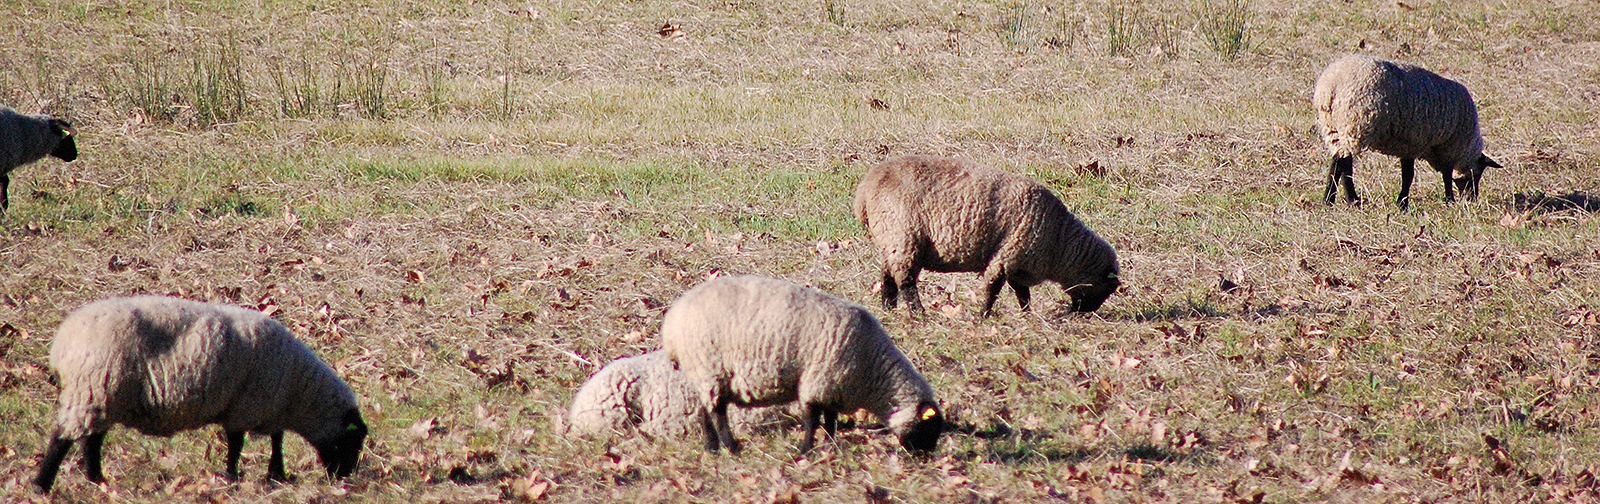 moutons1600x504-1